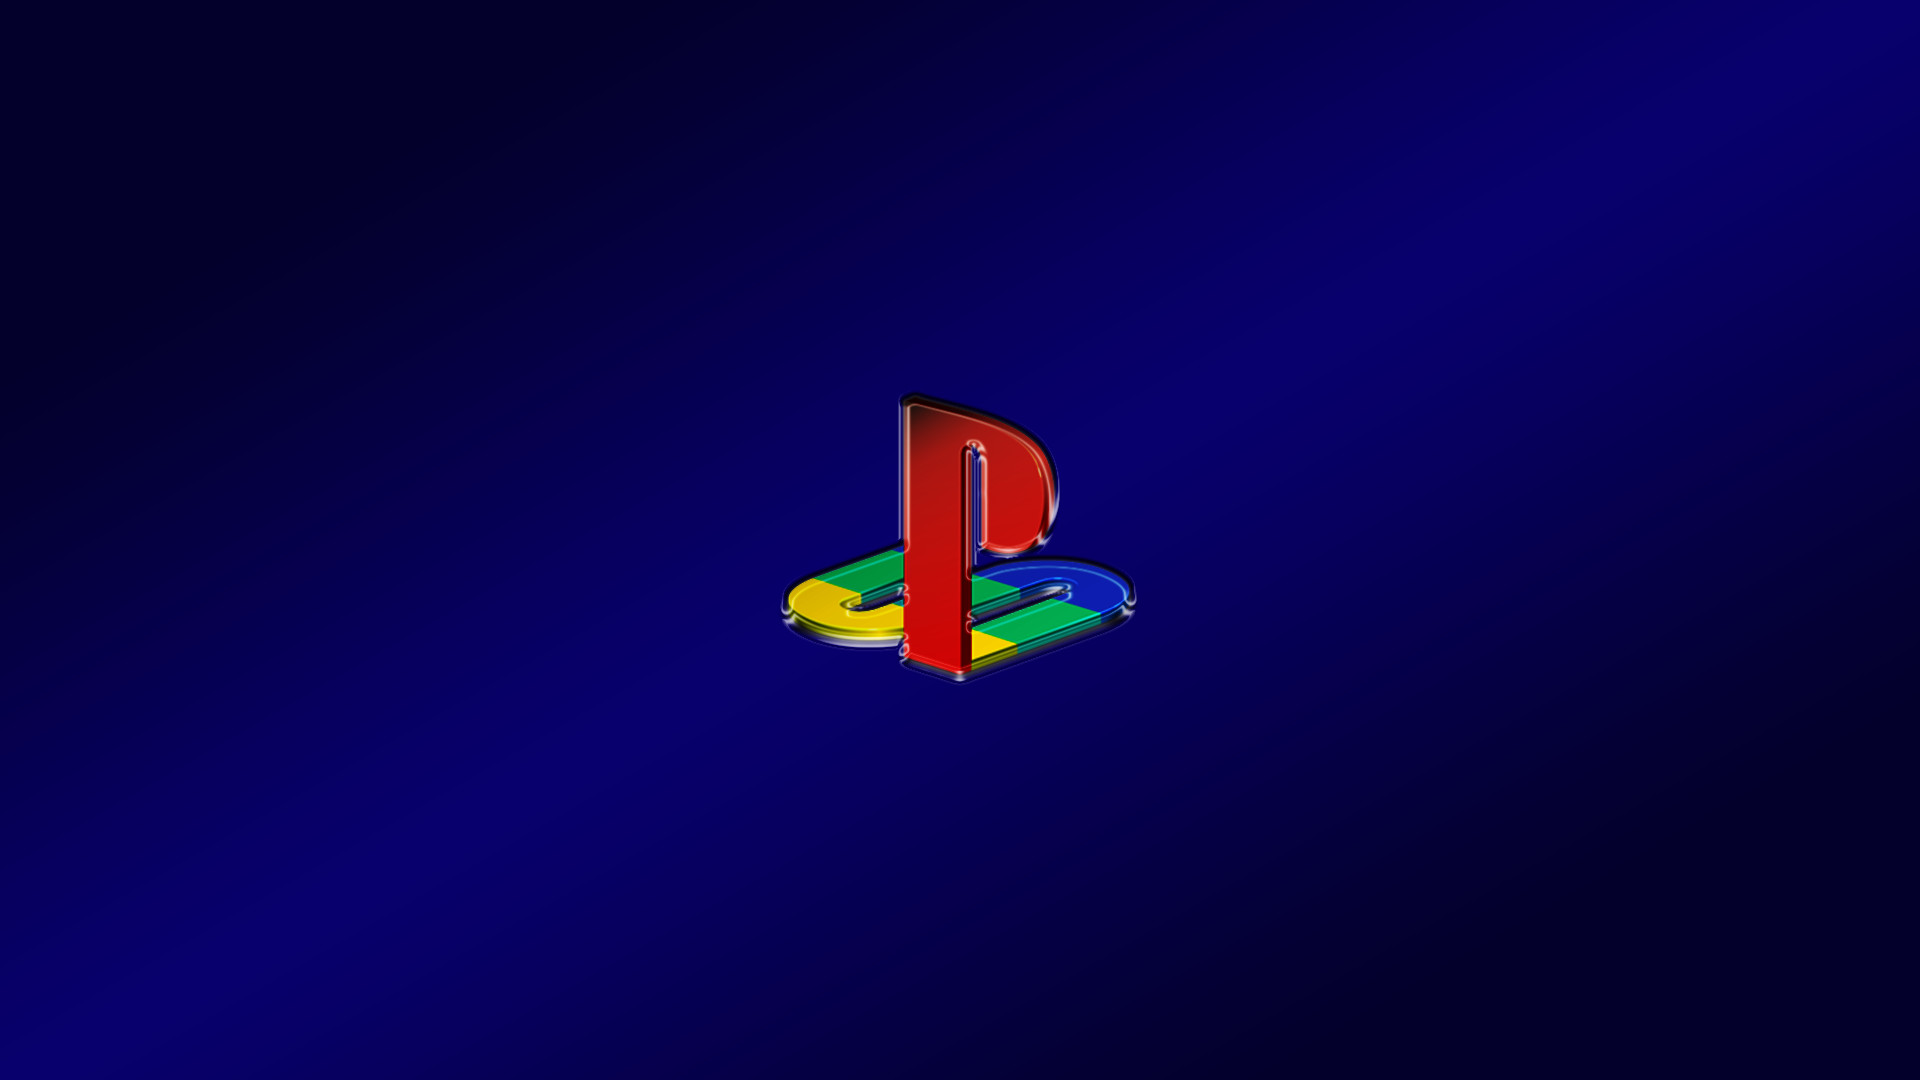 Playstation Wallpaper 77 Images